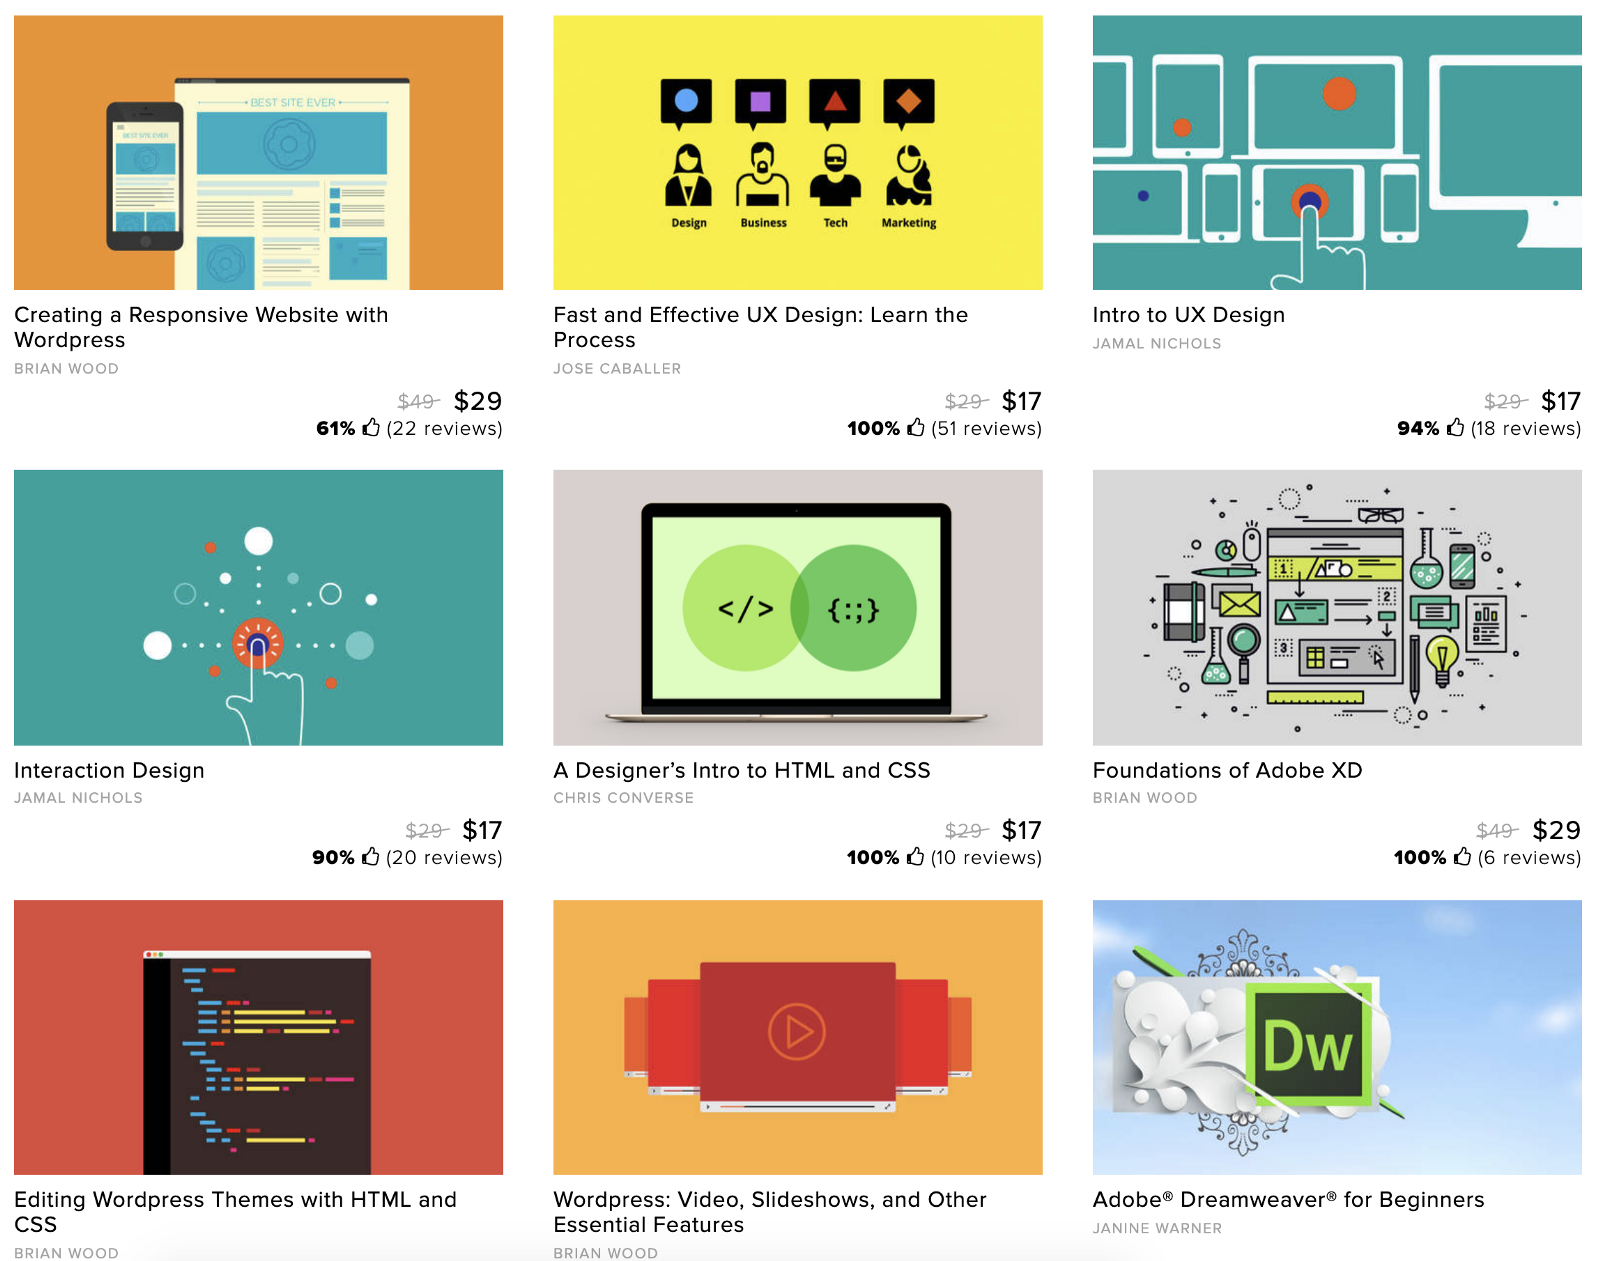 CreativeLive courses on UX design